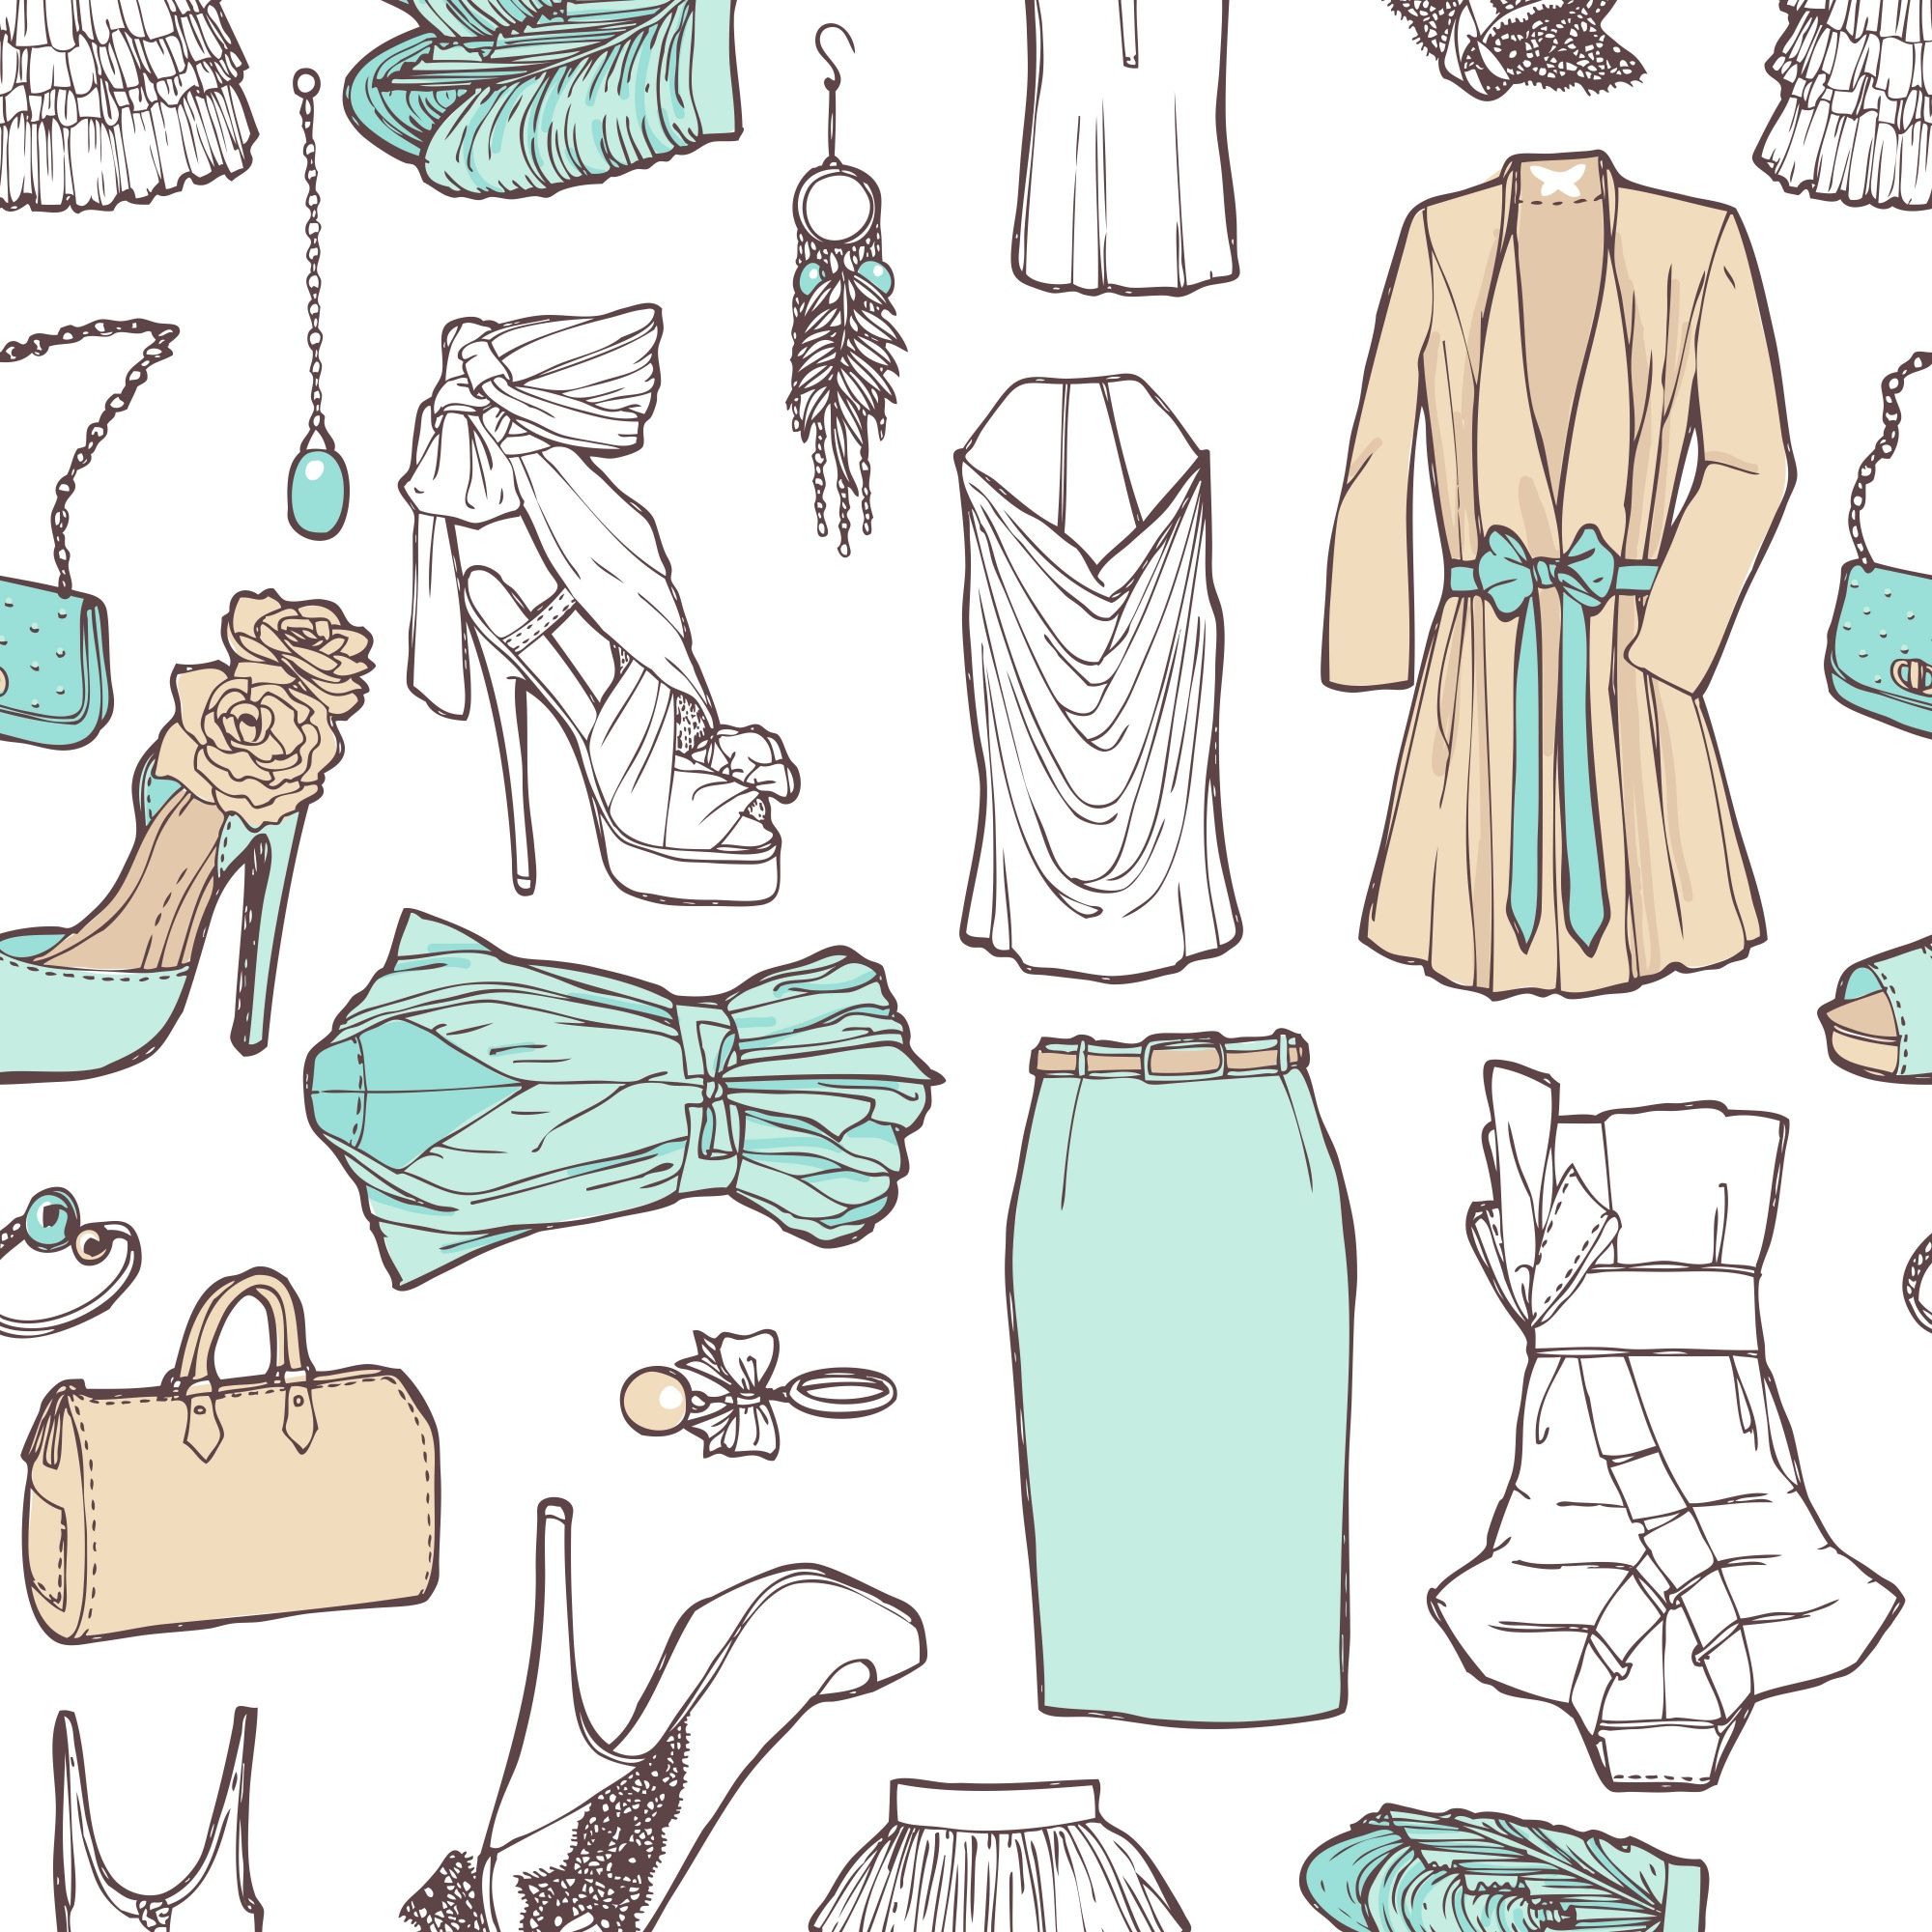 Shopping list in pictures. Pattern of women's clothing in a romantic style for work and rest. Fashionable pattern.